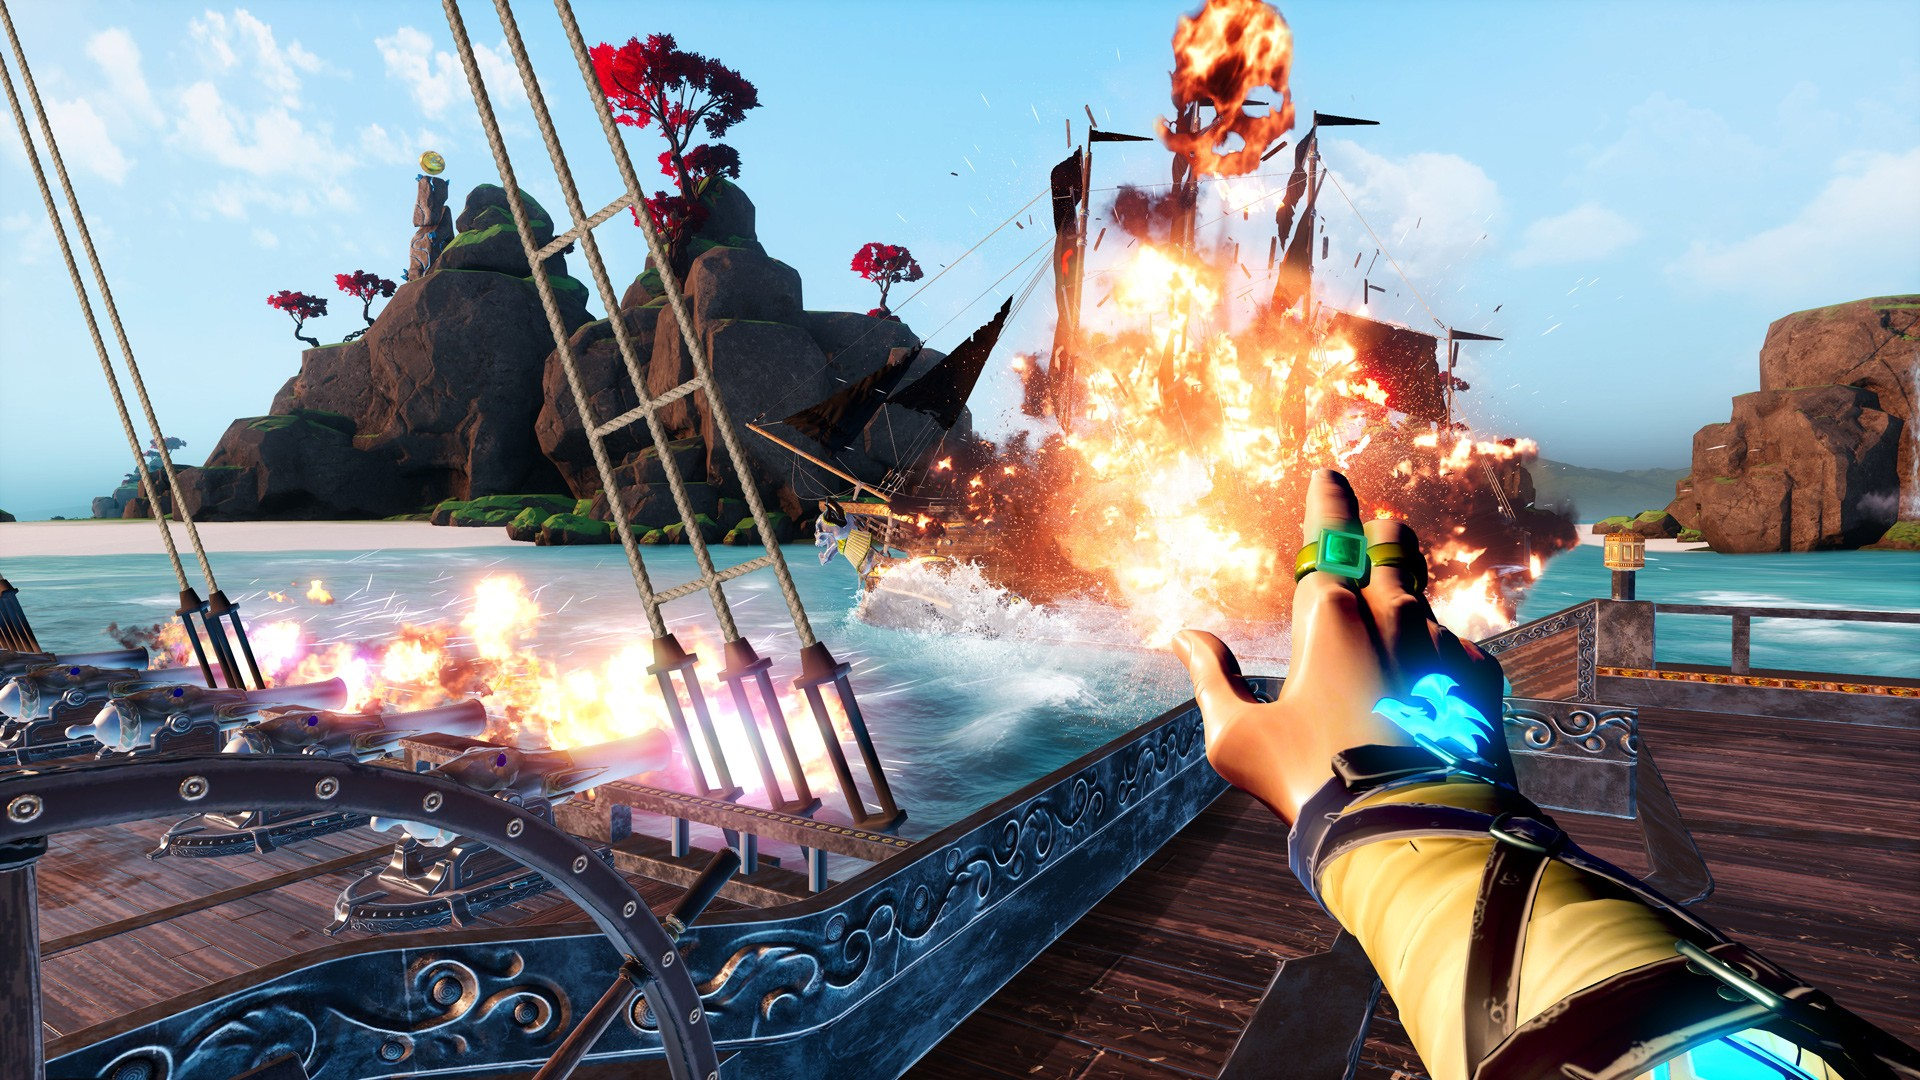 Action, adventure, Battlewake, Battlewake Review, casual, Combat, indie, Marine, PlayStation VR, PS4, PS4 Review, PSVR, PSVR Review, Shooter, simulation, strategy, Survios